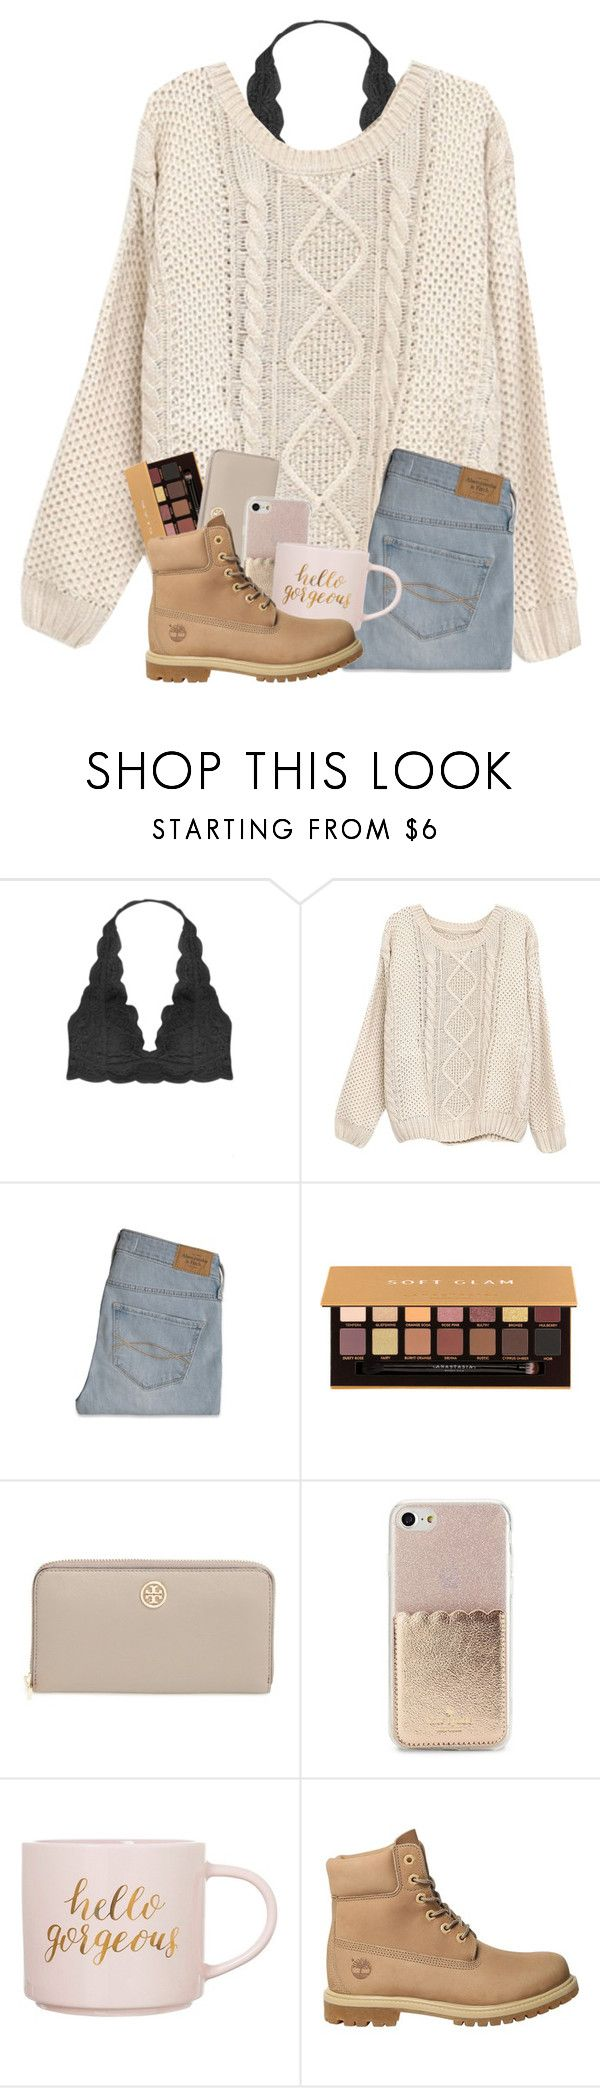 """Can I raid anyone's items??"" by magsvolleyball2 ❤ liked on Polyvore featuring Humble Chic, Abercrombie & Fitch, Anastasia Beverly Hills, Tory Burch, Kate Spade, Clay Art and Timberland"